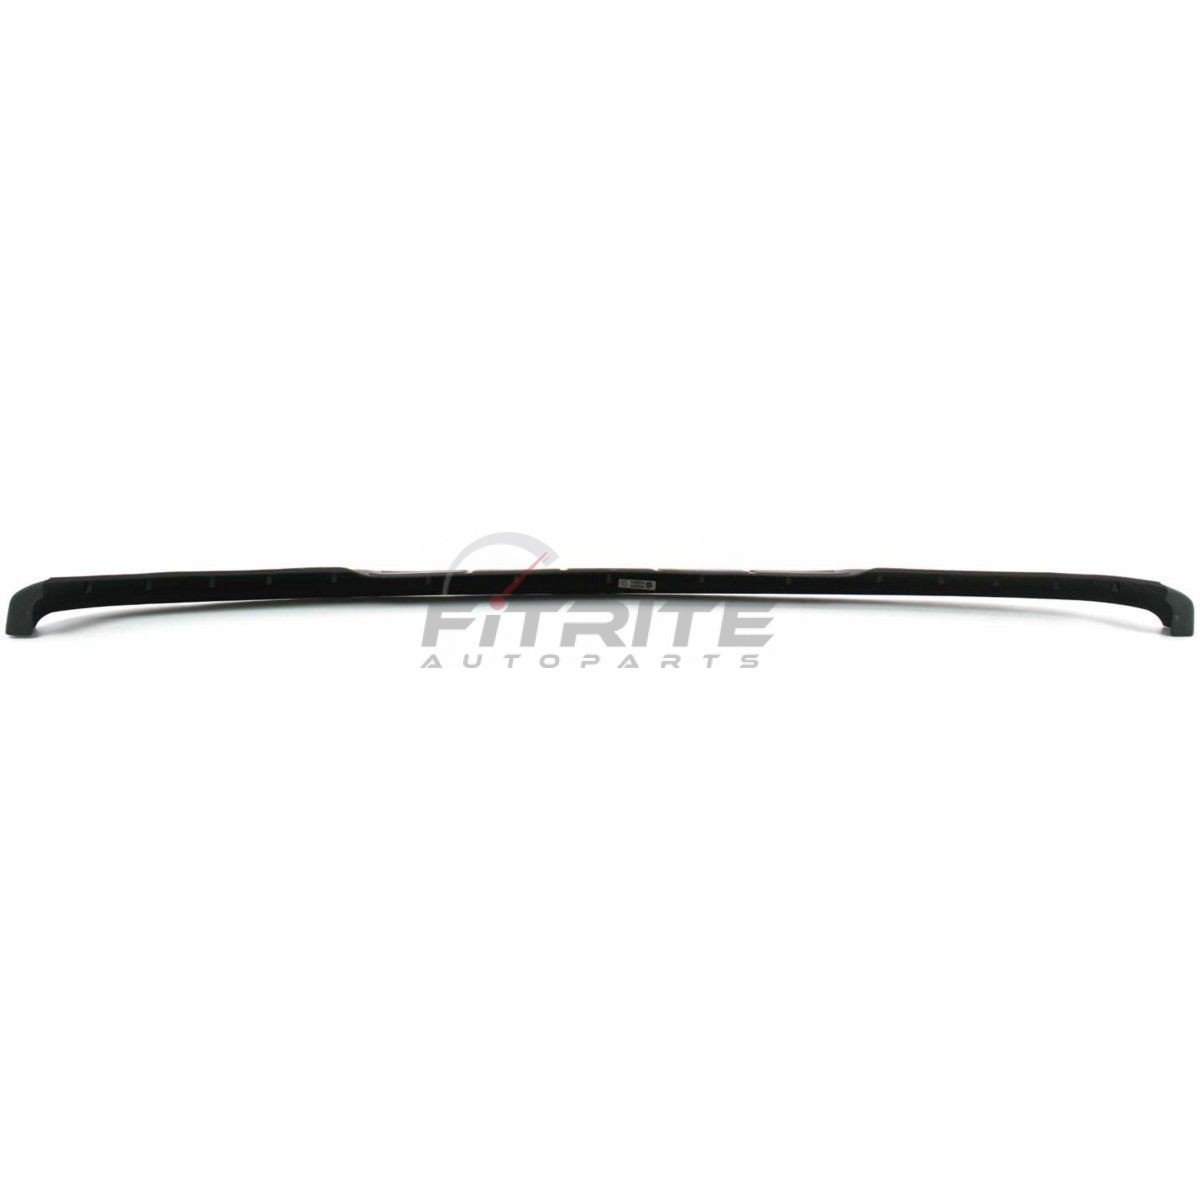 NEW FRONT UPPER BUMPER COVER PRIMED FOR 1996-02 CHEVROLET